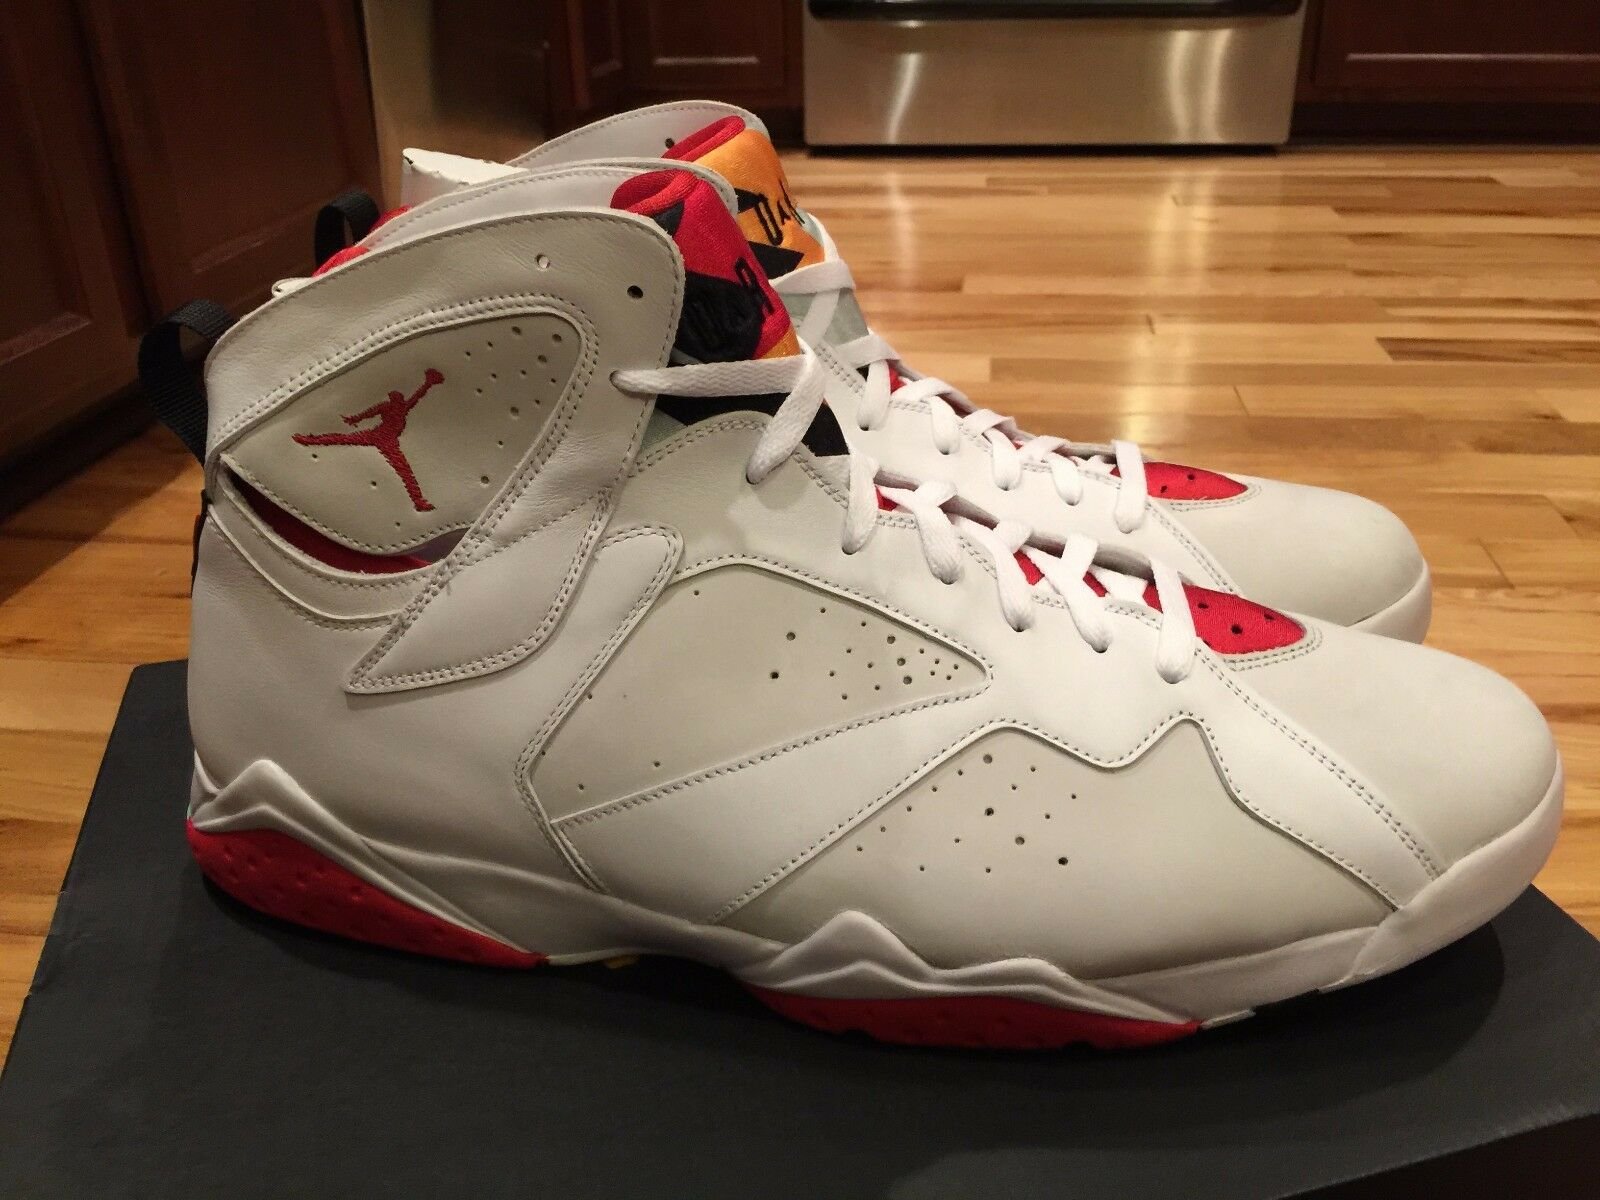 NIKE AIR JORDAN 7 VII RETRO HARE BUGS BUNNY WHITE TRUE RED 304775-125 SIZE 18 best-selling model of the brand